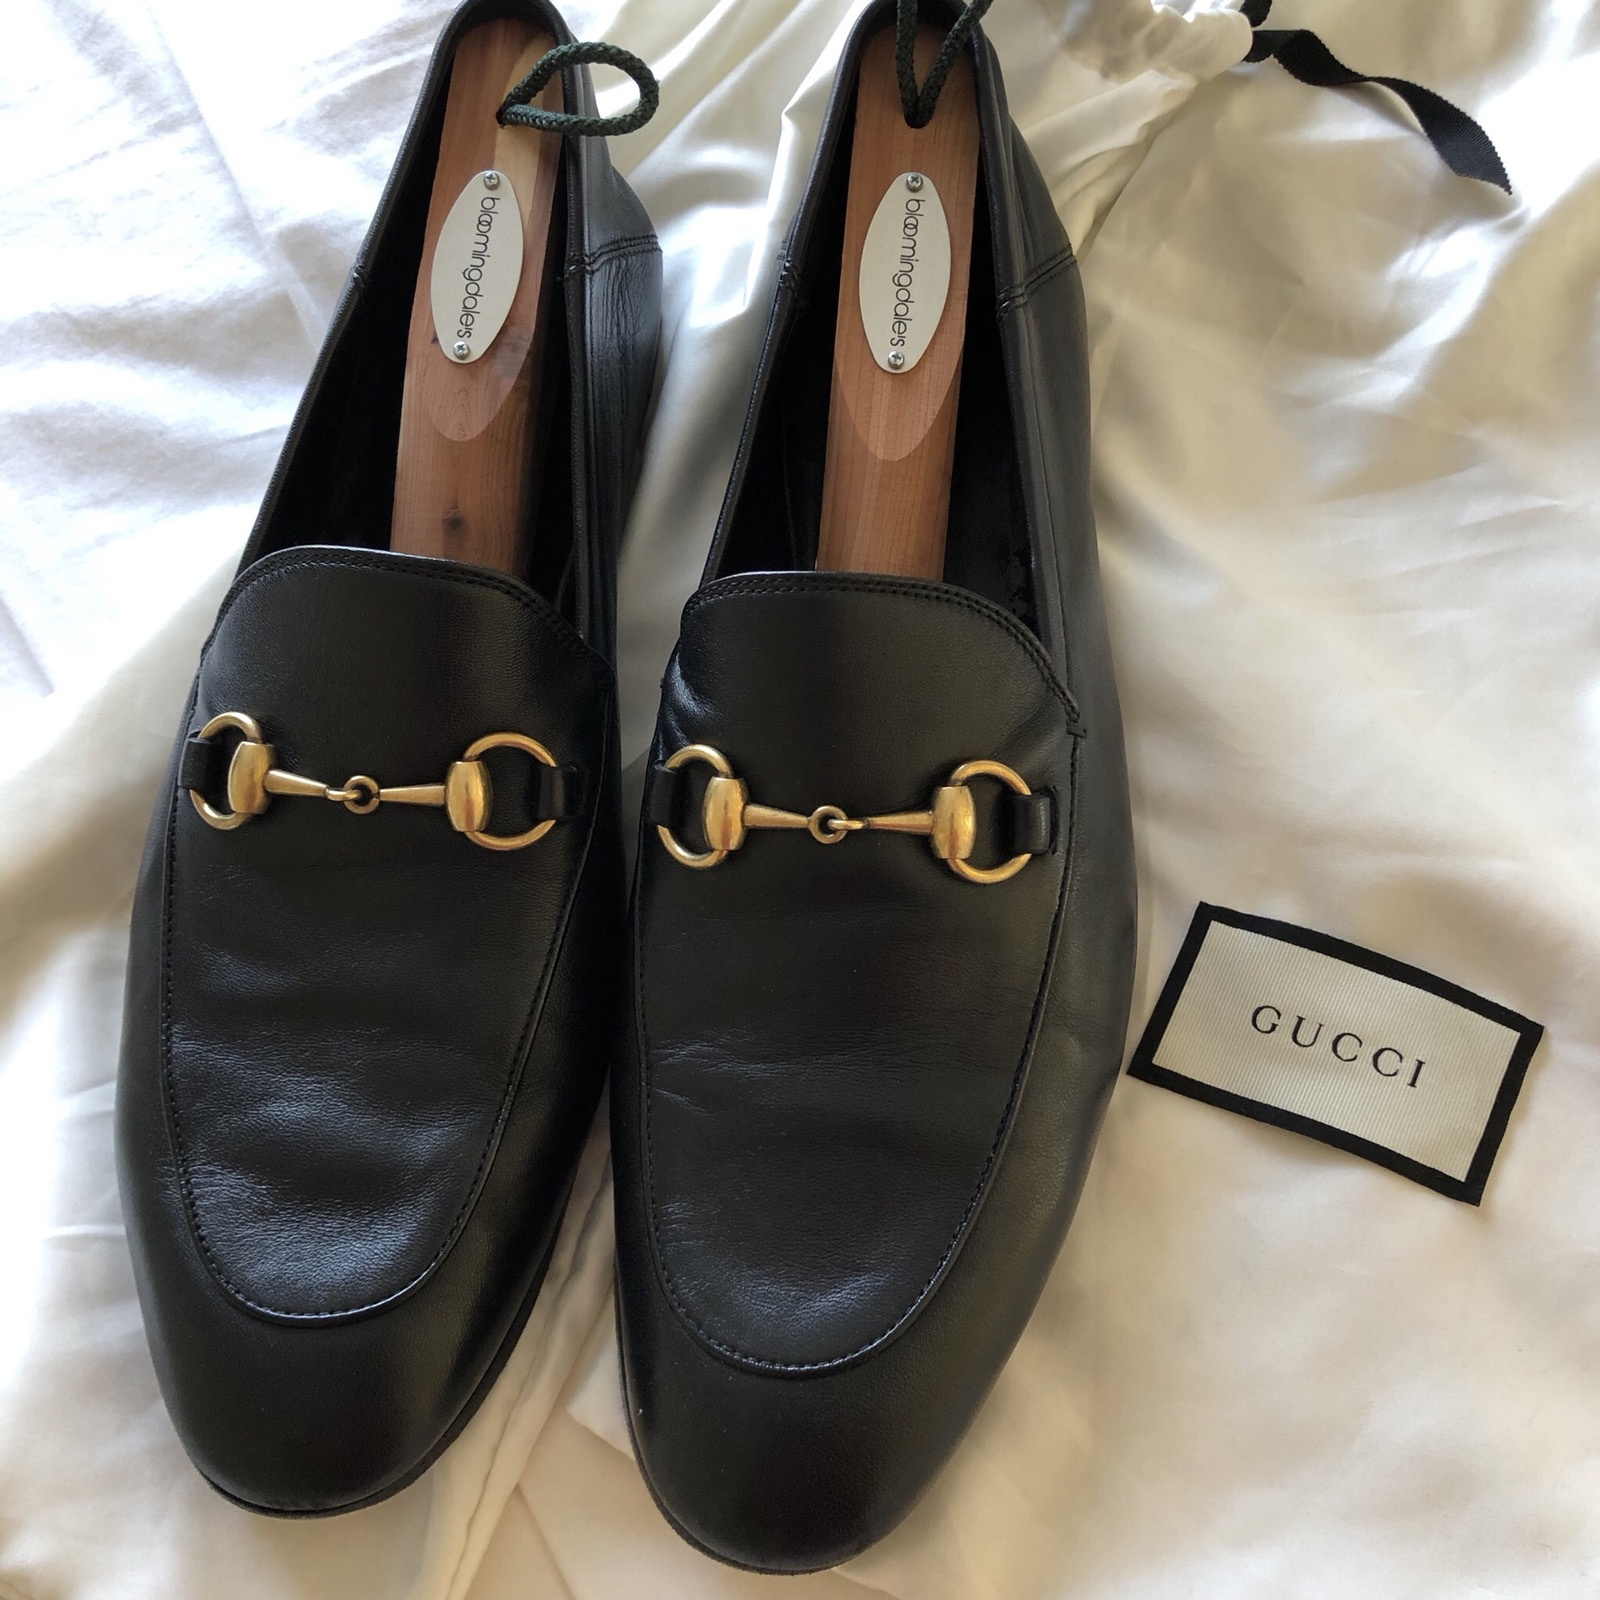 b4a9902d8d1 Gucci Men s Gucci Brixton Loafer (US 10 Fit) Size 9 - Casual Leather Shoes  for Sale - Grailed